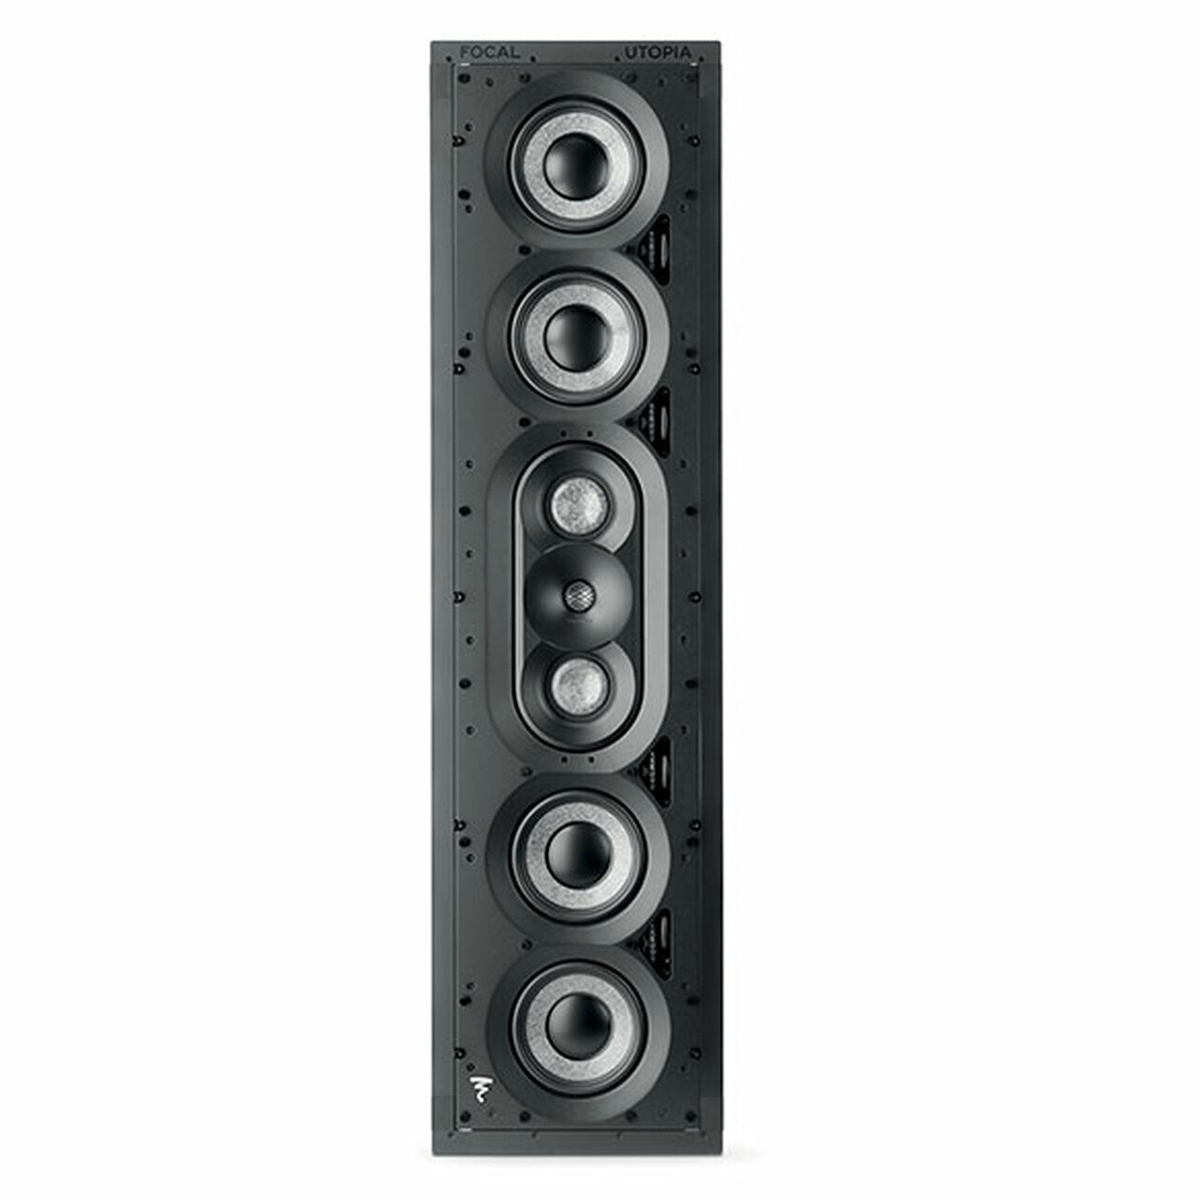 Focal Iwlcr Utopia Front Life Style Store